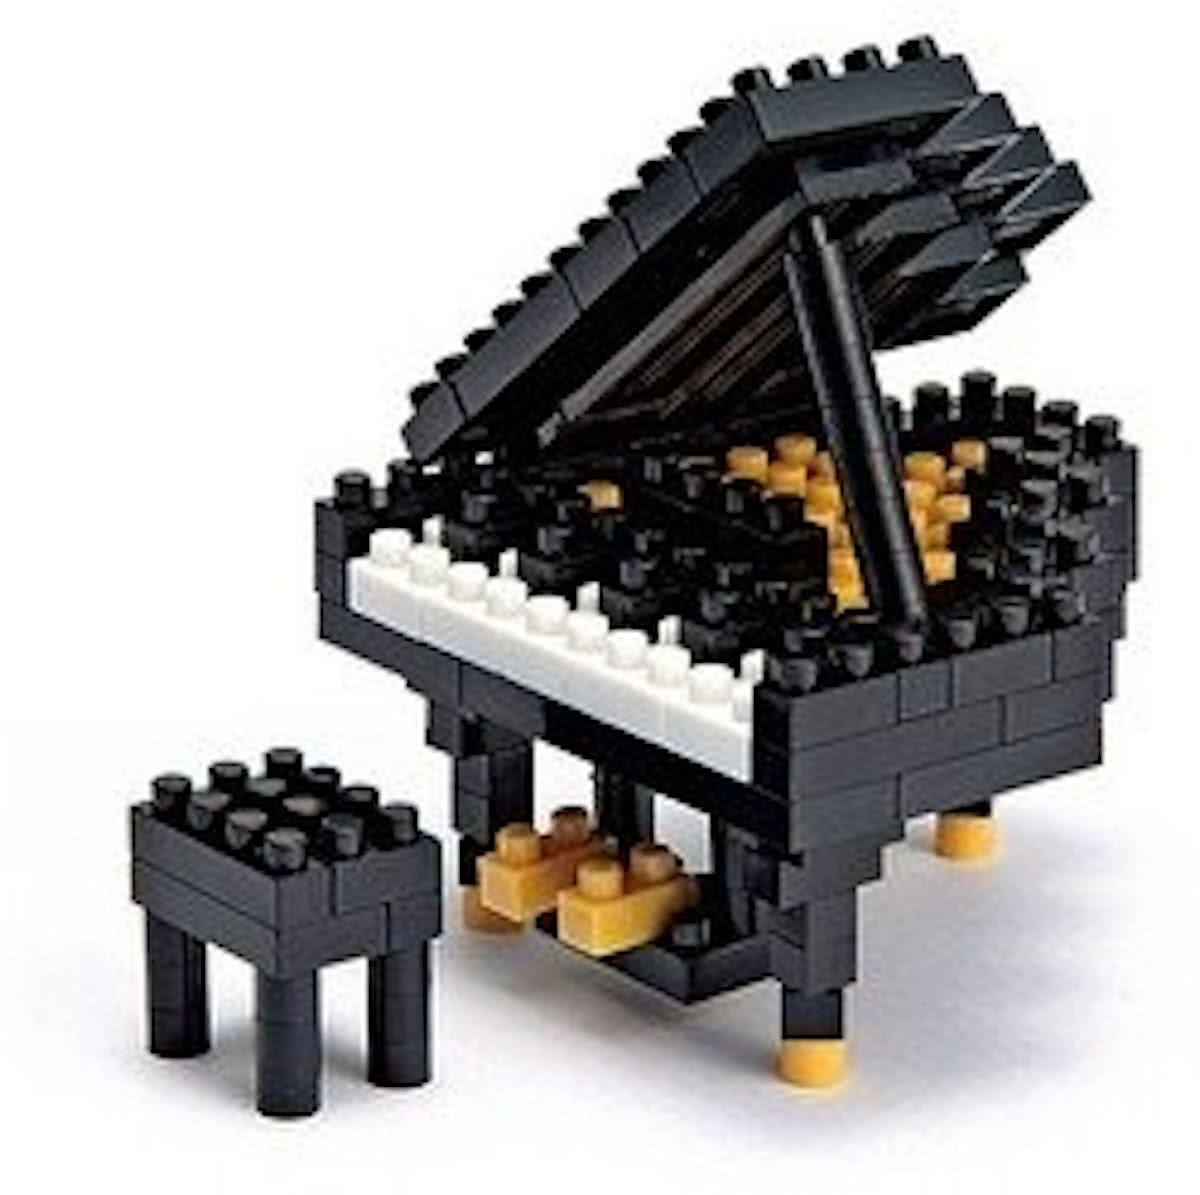 Nanoblock Grand Piano NBC-146 by Kawada